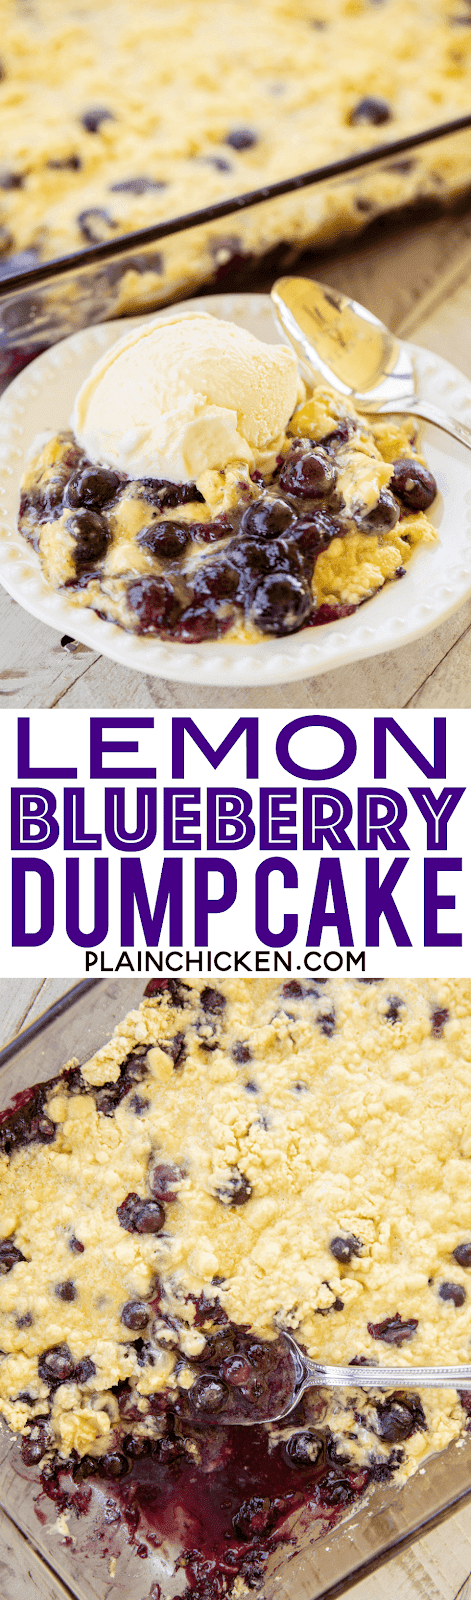 Lemon Blueberry Dump Cake - so easy and SOOOO delicious! Blueberries, sugar, lemon zest, lemon cake mix and butter. Just dump everything in the pan and throw it in the oven. No mixing, no extra dirty dishes, no spoons, just one pan. Great for potlucks and cookouts. Serve warm with vanilla ice cream. There are NEVER any leftovers! SO good! #dessert #blueberries #lemon #cake